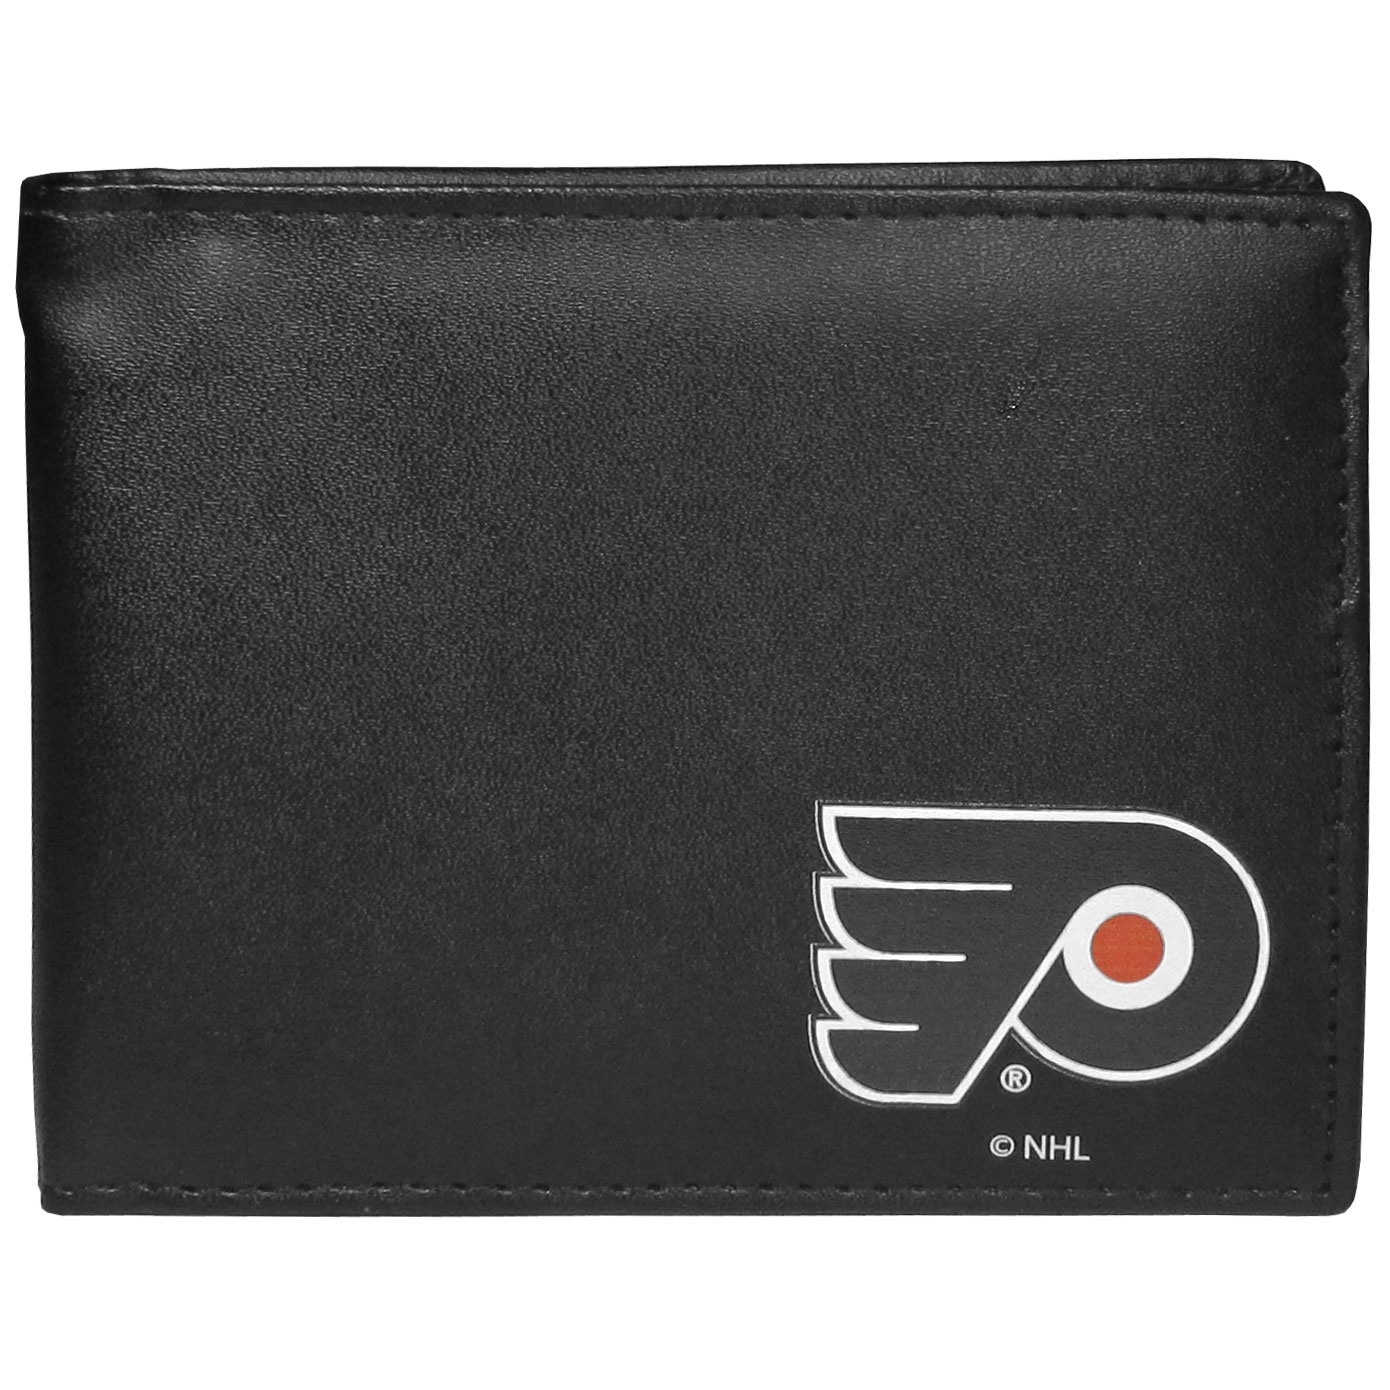 Philadelphia Flyers Bi-fold Wallet - Sports fans do not have to sacrifice style with this classic bi-fold wallet that sports a Philadelphia Flyers emblem. This men's fashion accessory has a leather grain look and expert craftmanship for a quality wallet at a great price. The wallet features inner credit card slots, windowed ID slot and a large billfold pocket. The front of the wallet features a printed team logo.